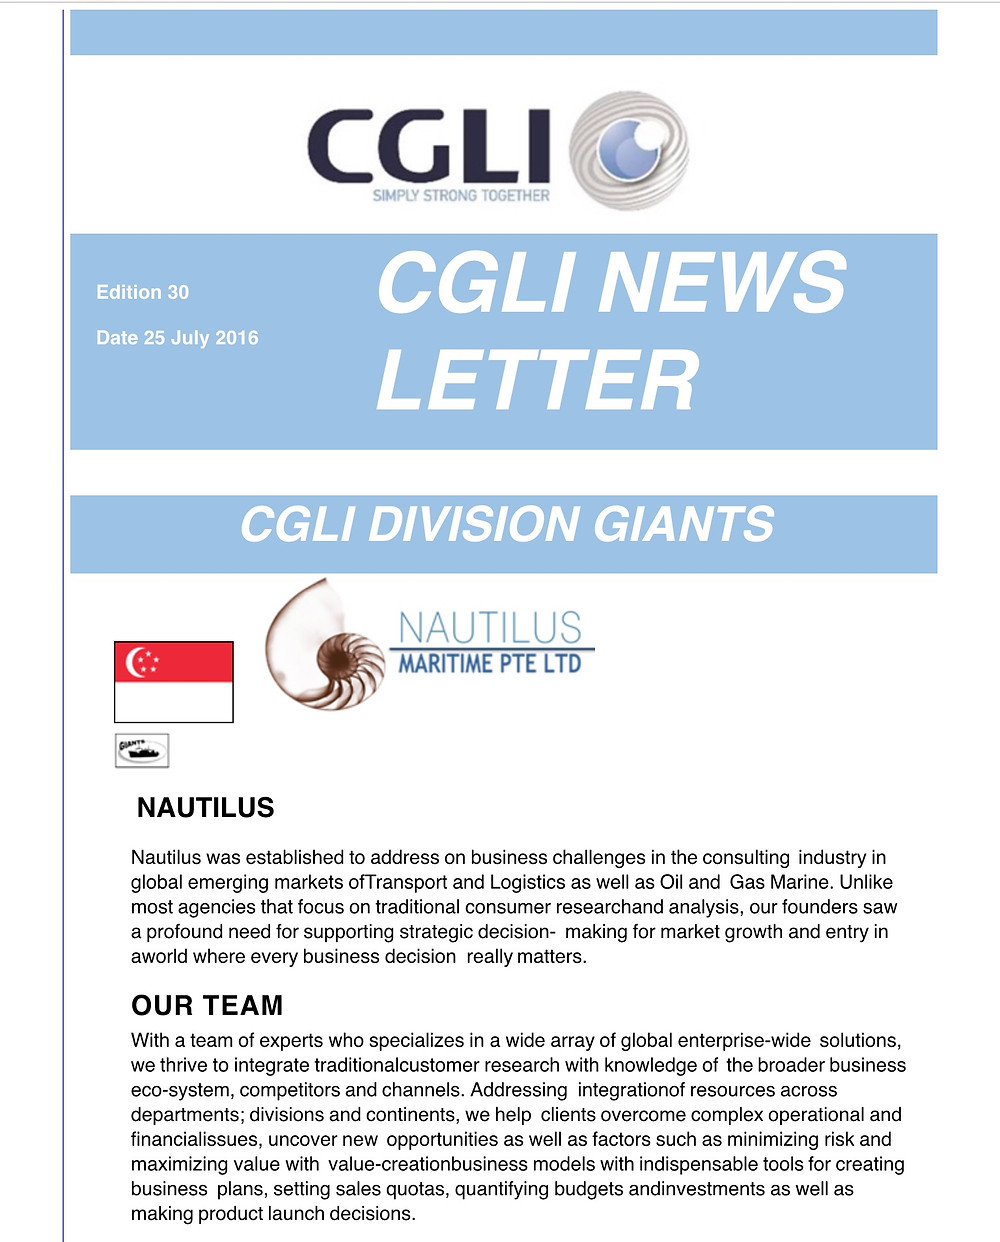 We are please to announce that on the 25th July, Nautilus Maritime has officially become a member of the CGLI - simply - strong - together Network. We are proud to present our clients new alternatives and options to cover all their requirements!